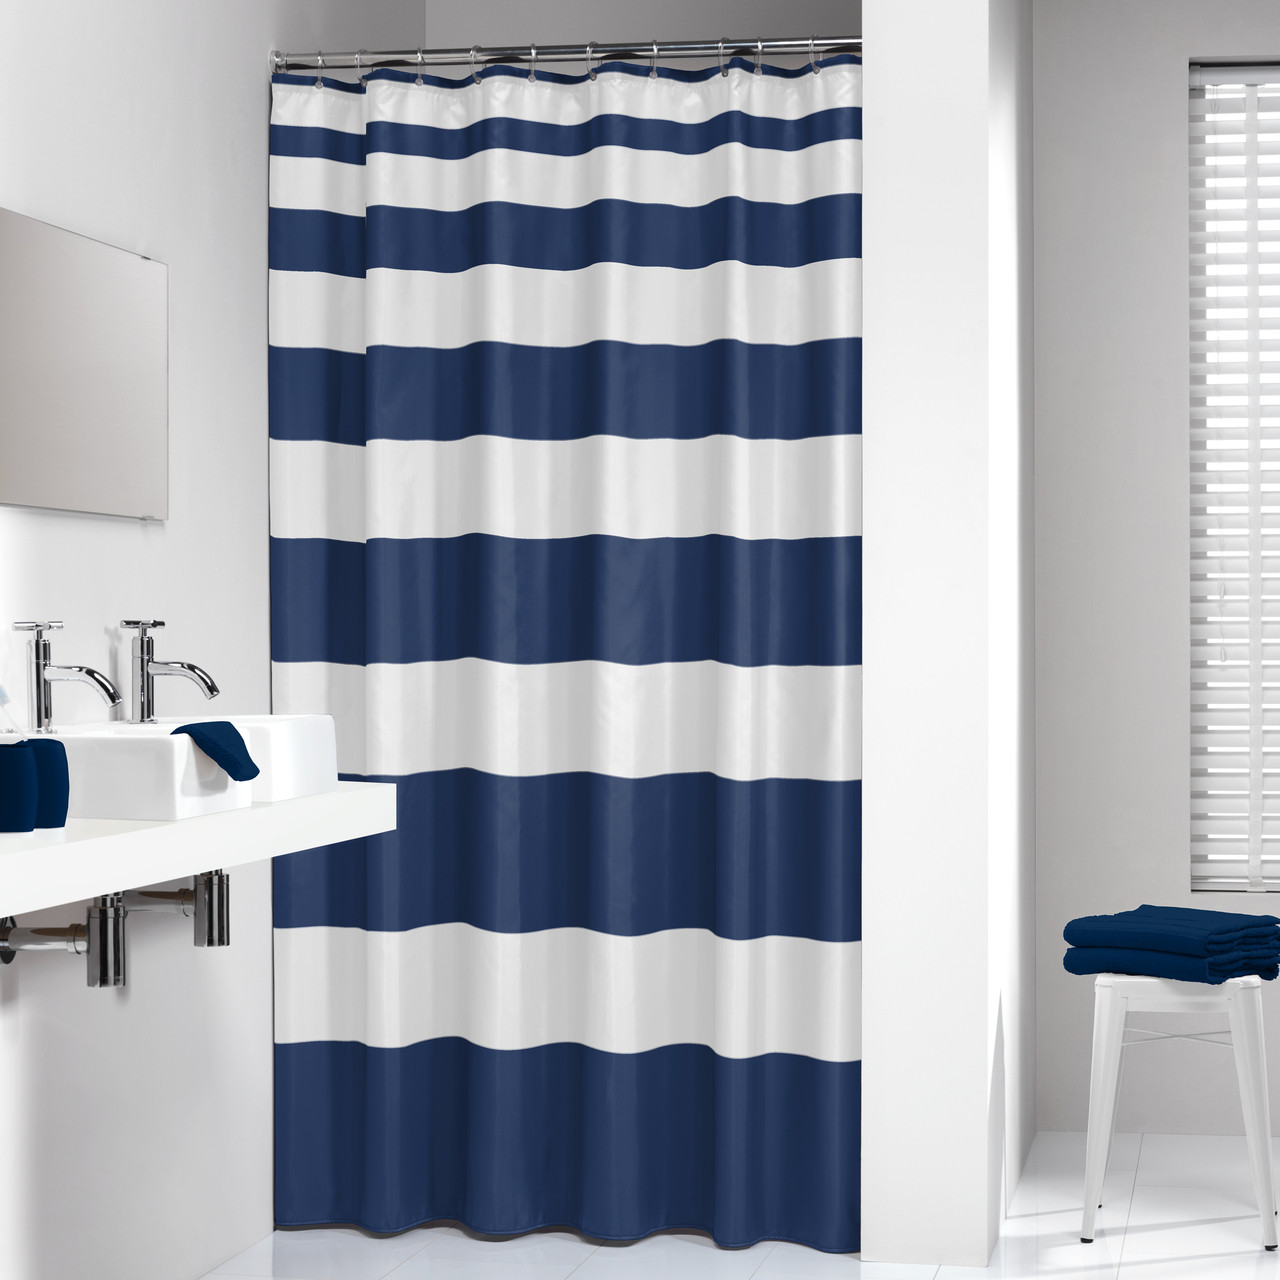 extra long shower curtain 72 x 78 inch sealskin nautica stripes blue and white fabric